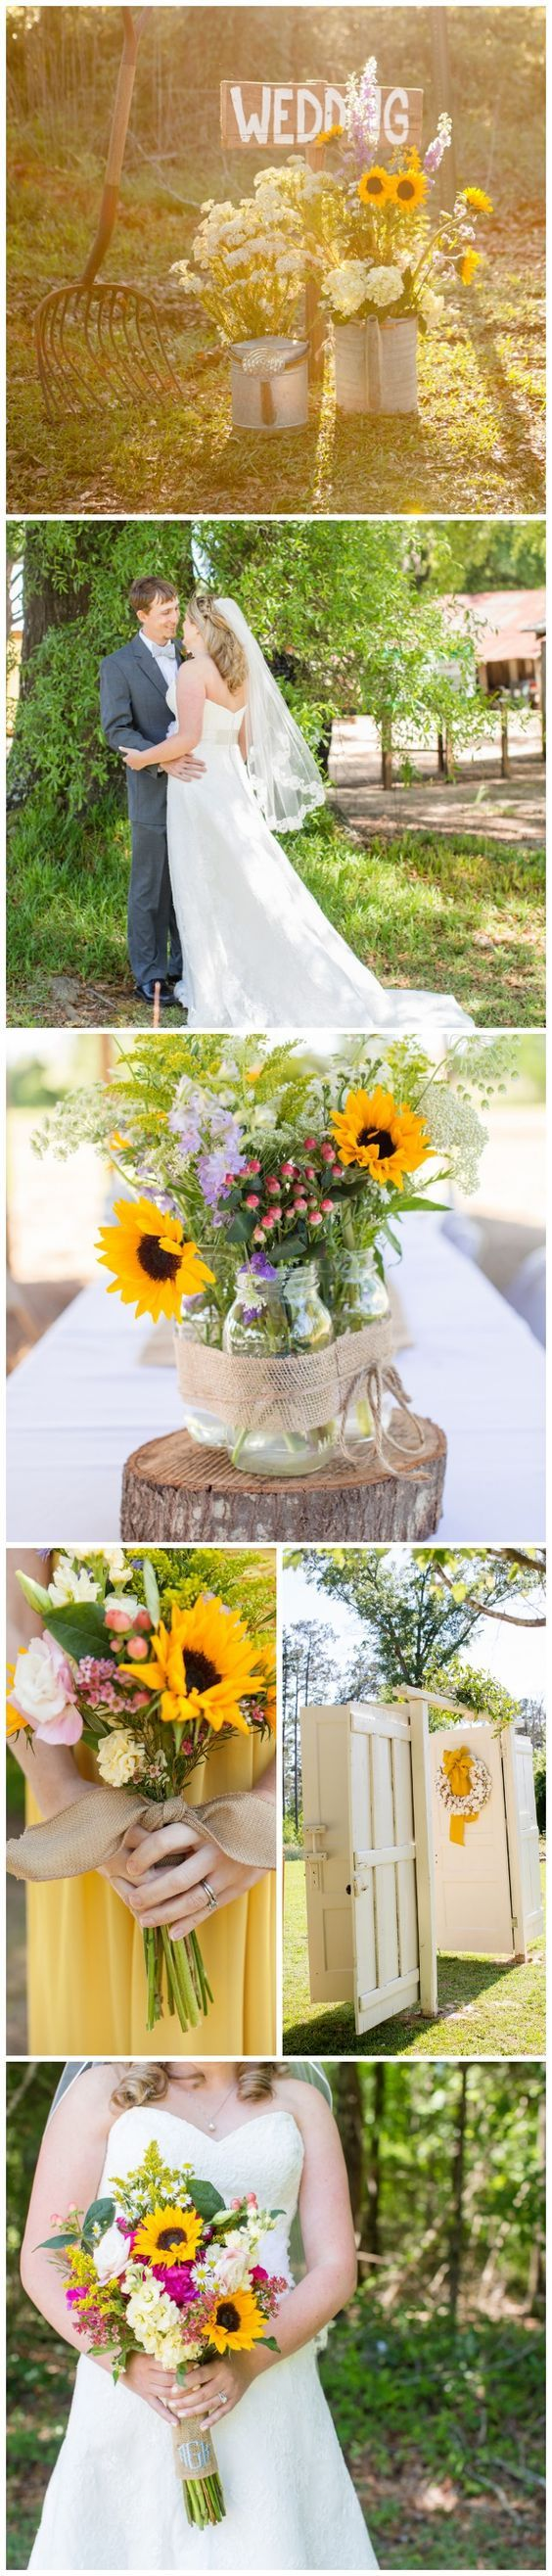 Country Yellow Sunflower Wedding Ideas / http://www.himisspuff.com/country-rustic-wedding-ideas/8/